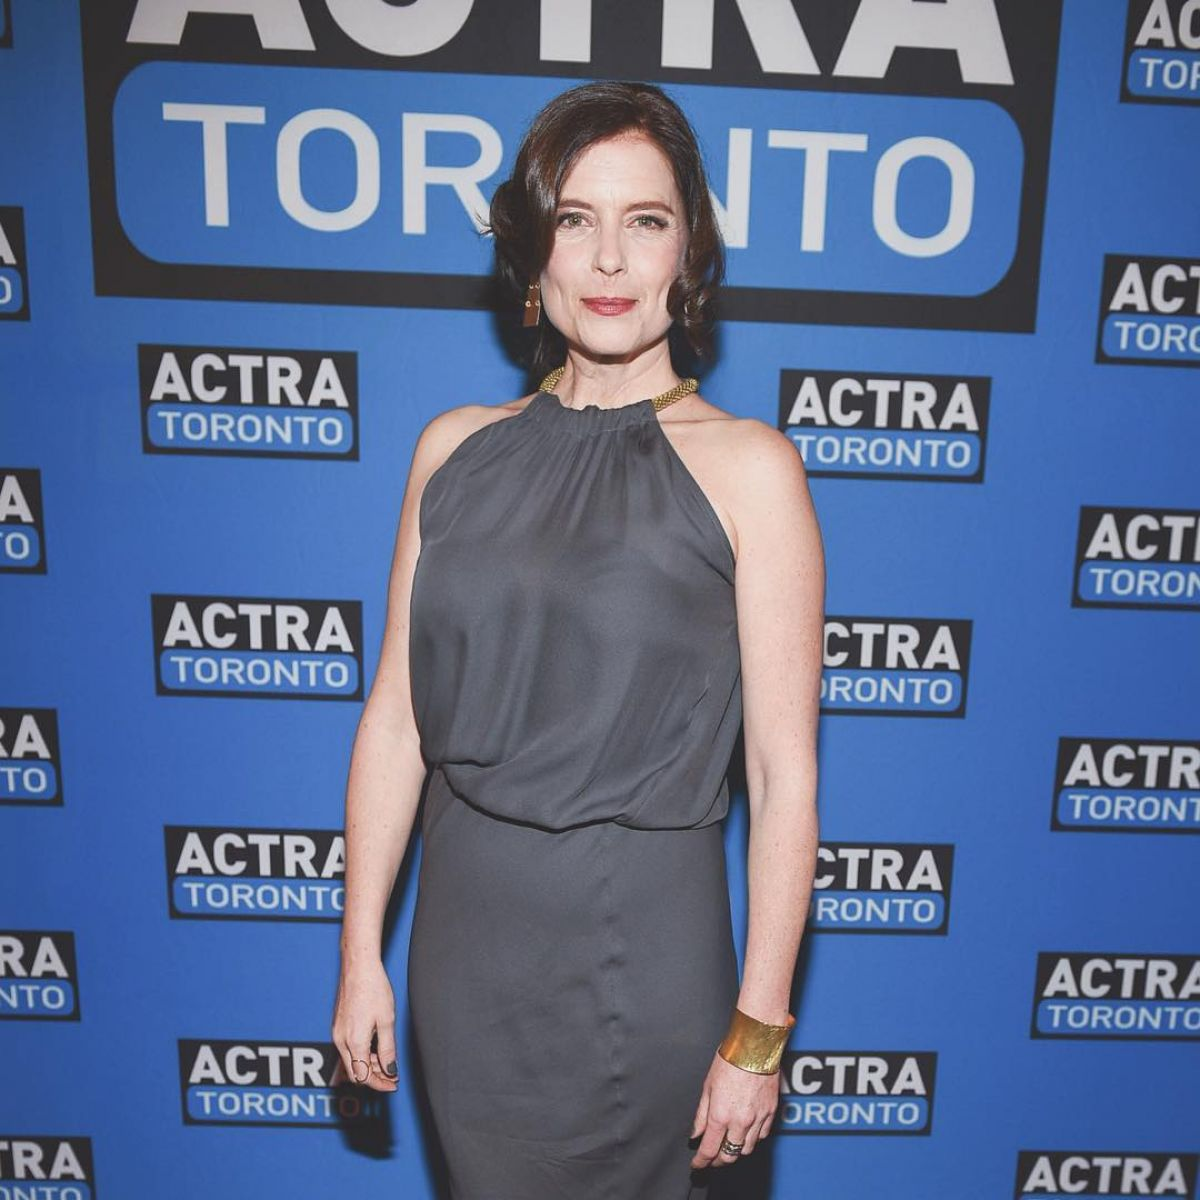 TORRI HIGGINSON at 14th Actra Awards in Toronto 02/20/2016